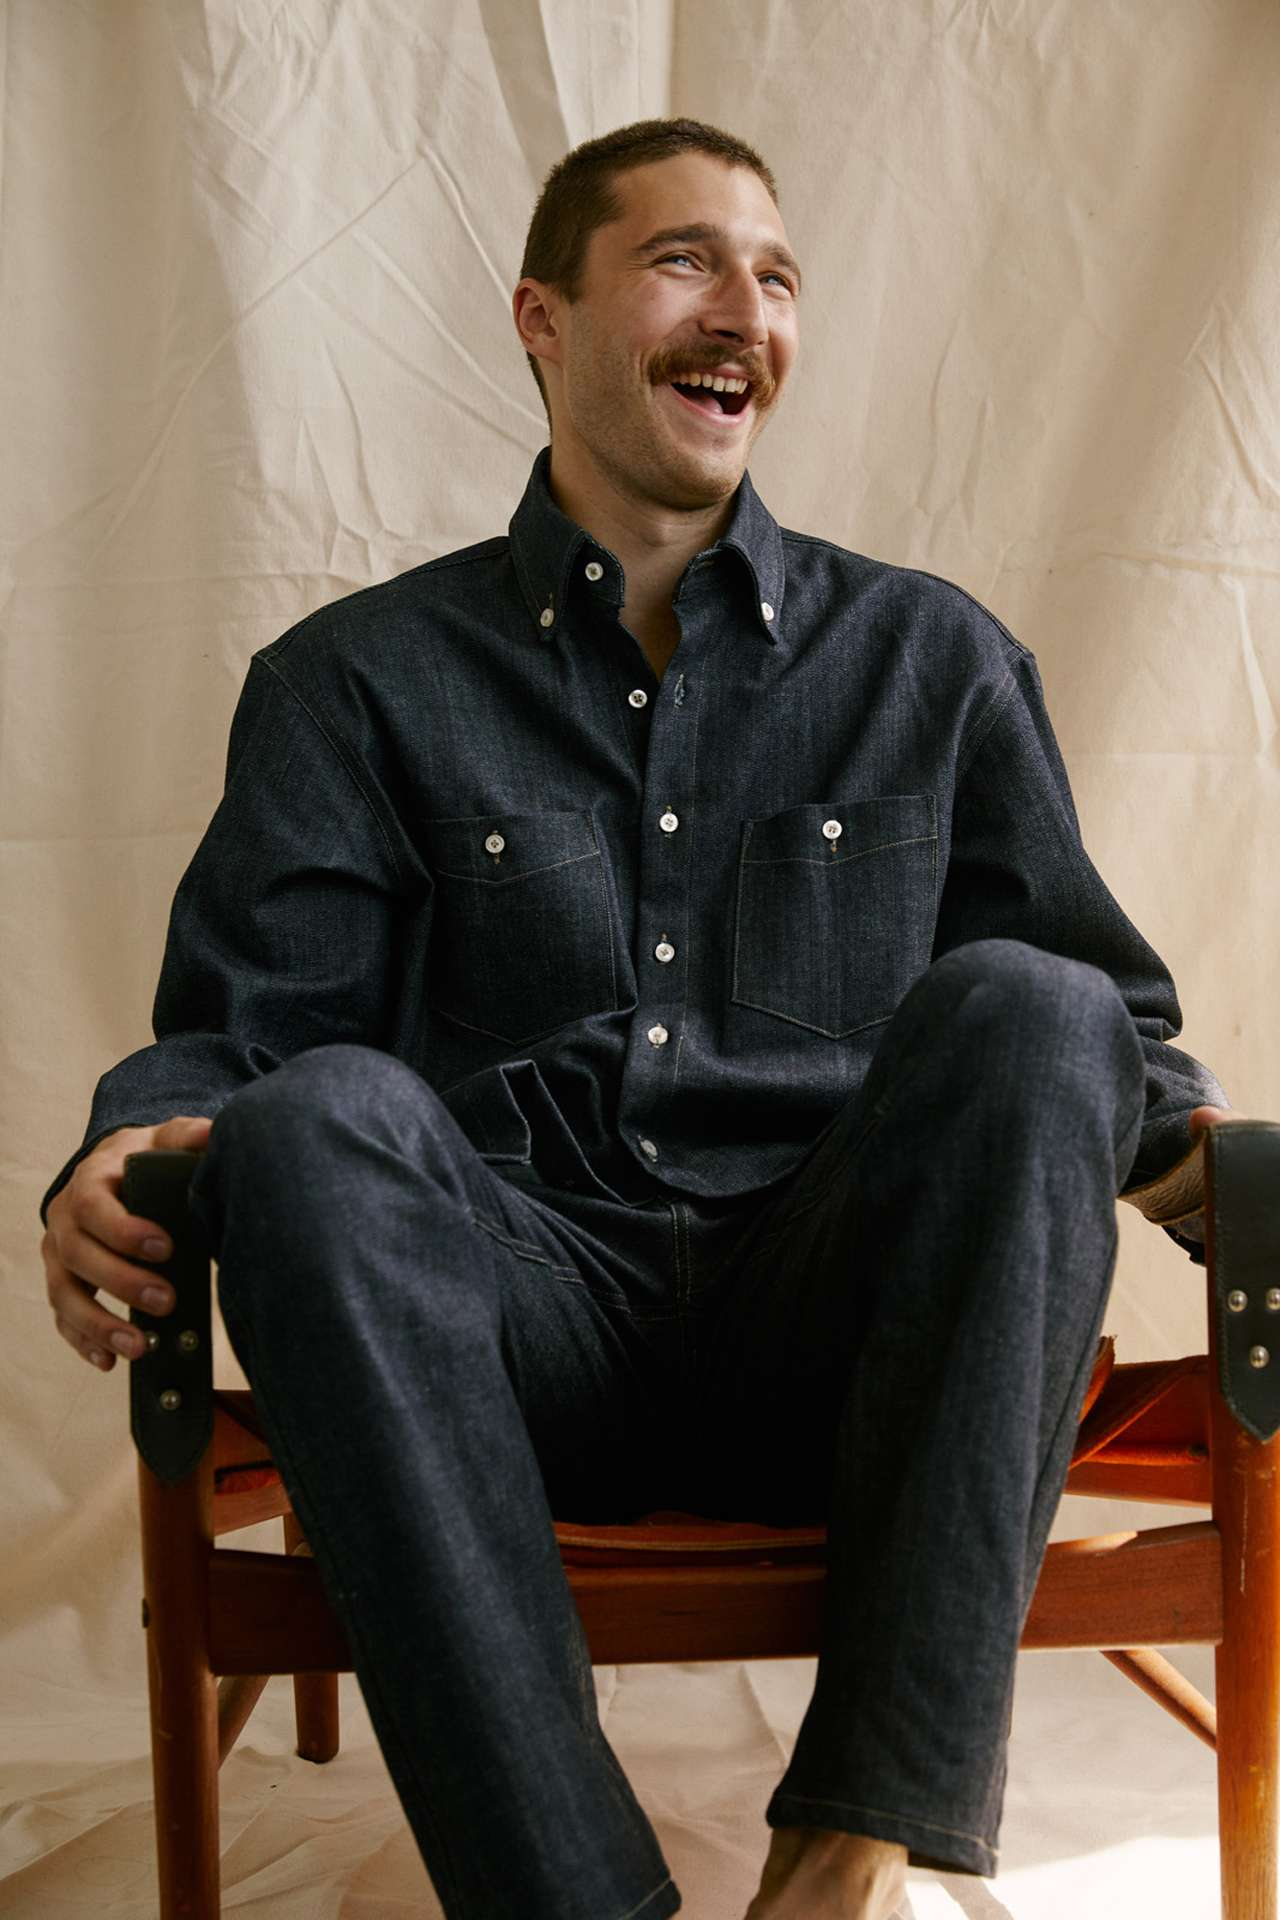 Premiere Adresse high fashion shop photographs by Kelly Jacob of man model sitting in chair wearing black denim button-up shirt and black denim pants